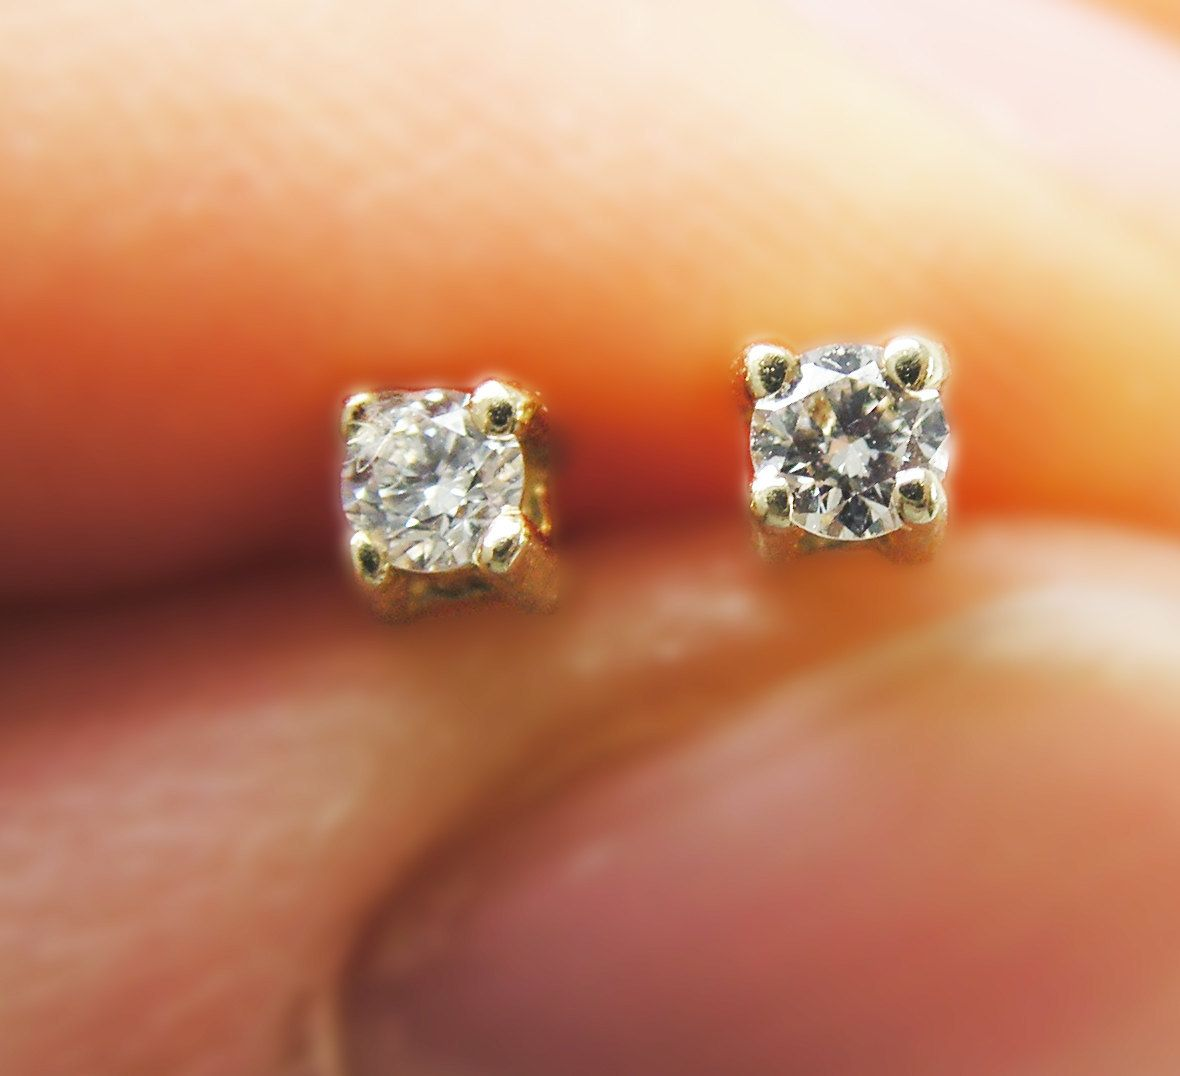 Beautiful 14k Gold Diamond Stud Earrings By Weddingrings585, $29900 I Like  Small, With Simple